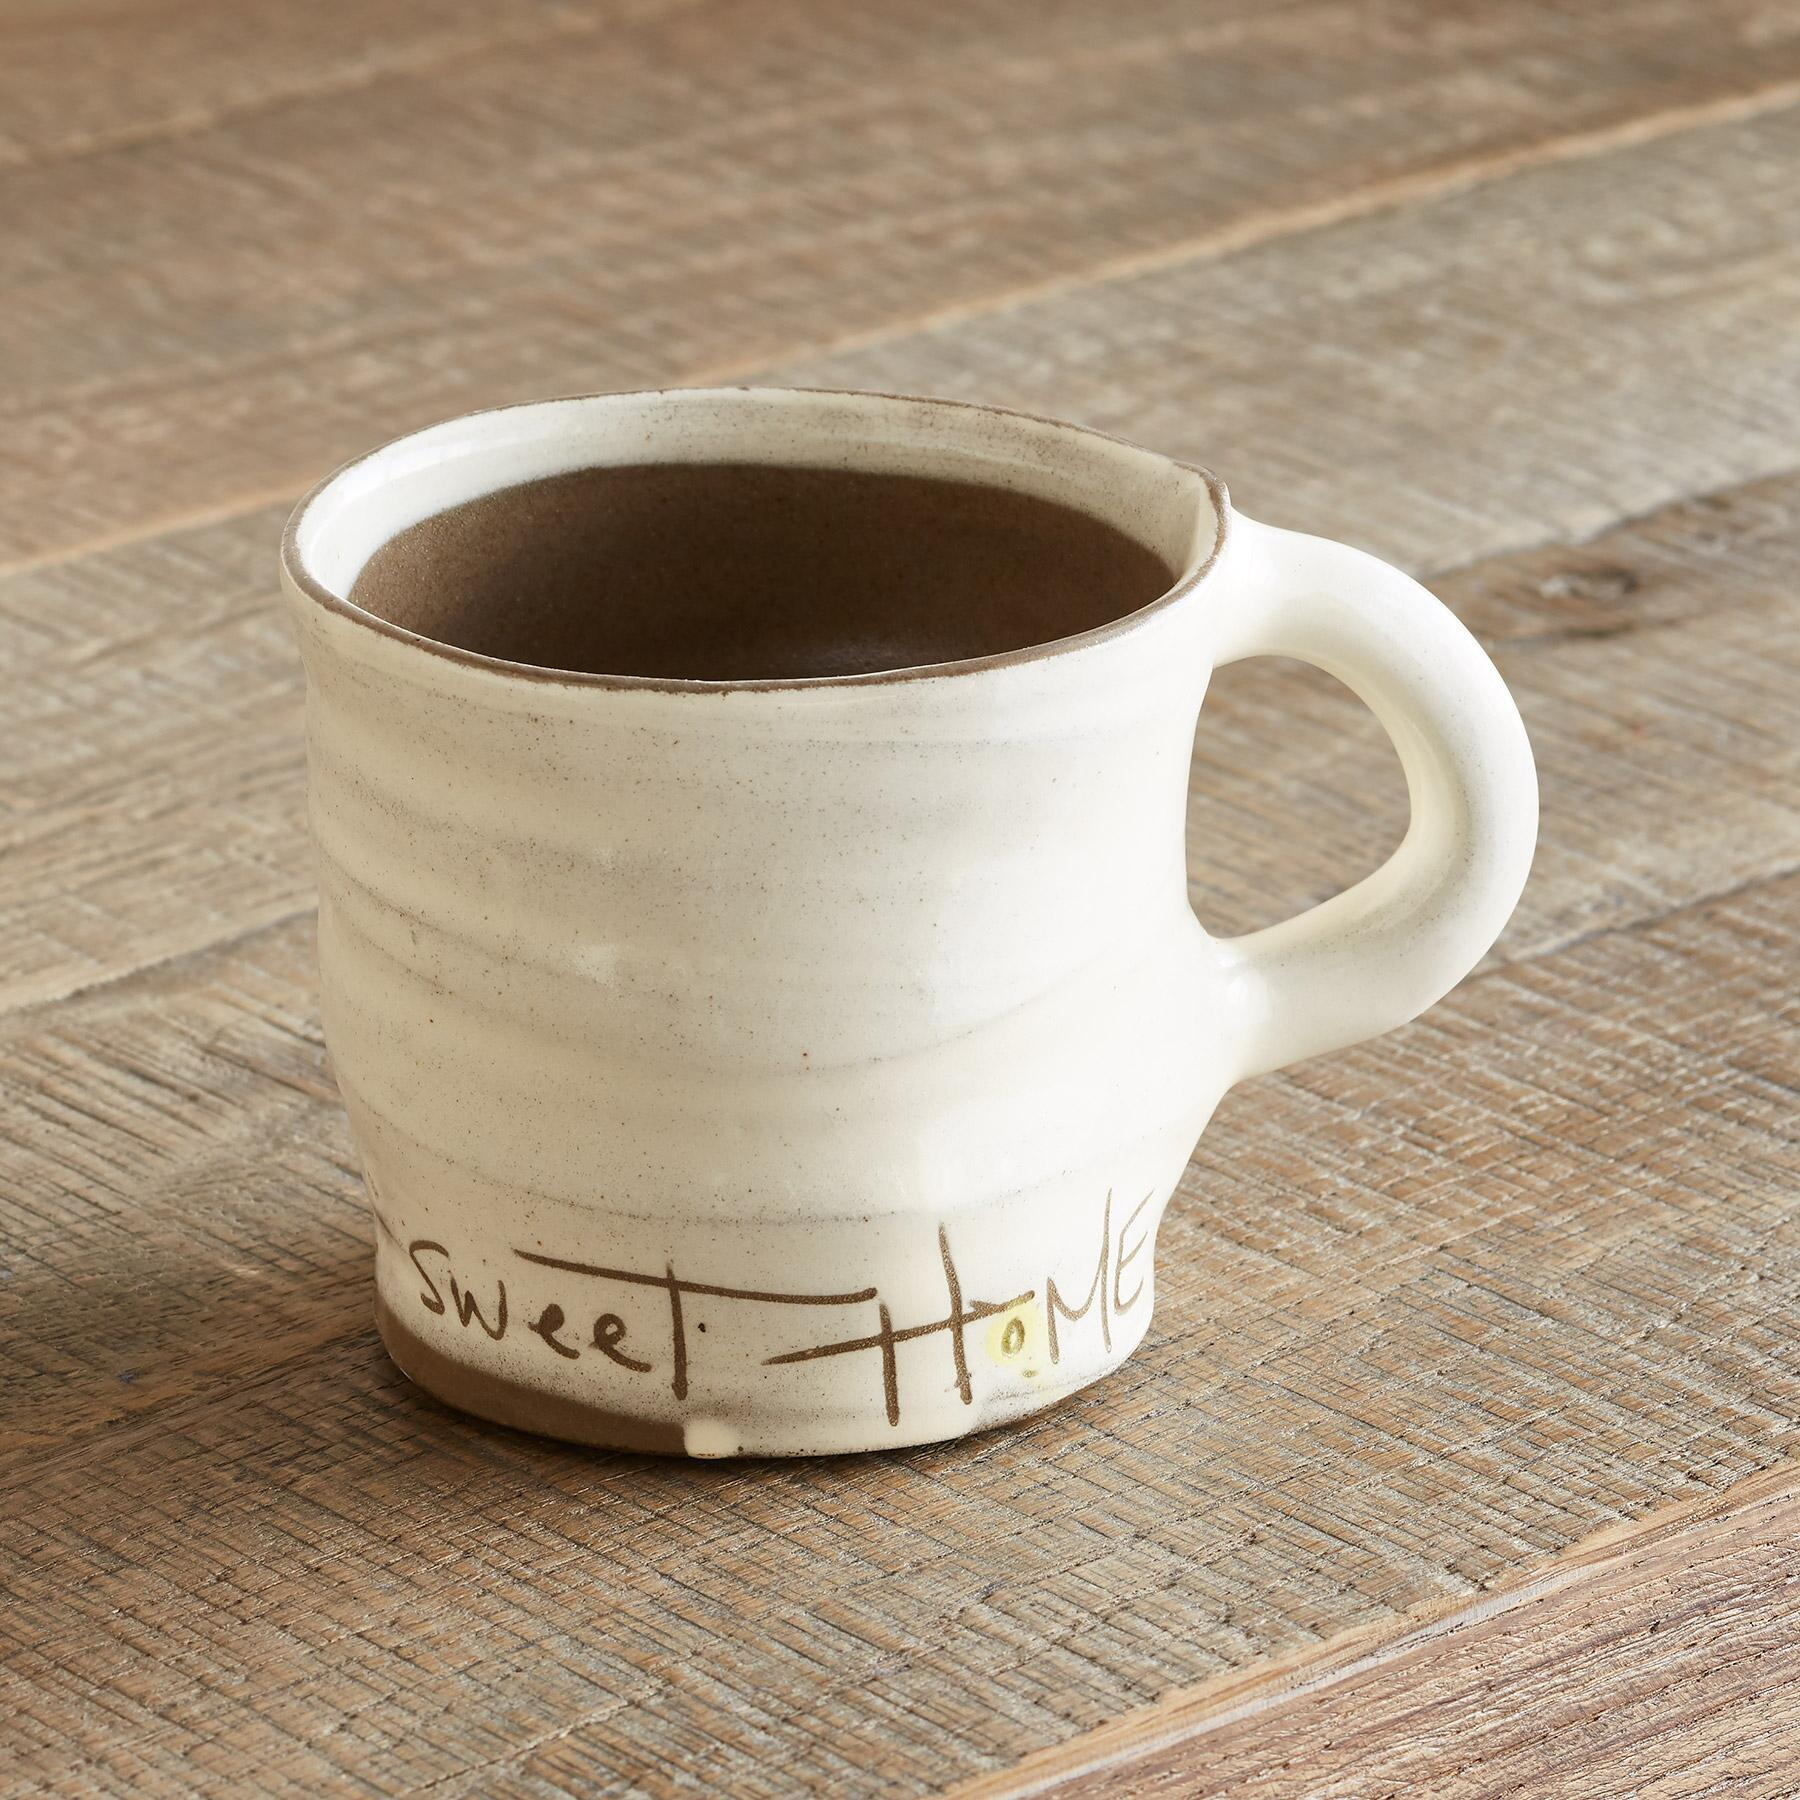 SENTIMENT HOME SWEET HOME MUG: View 3